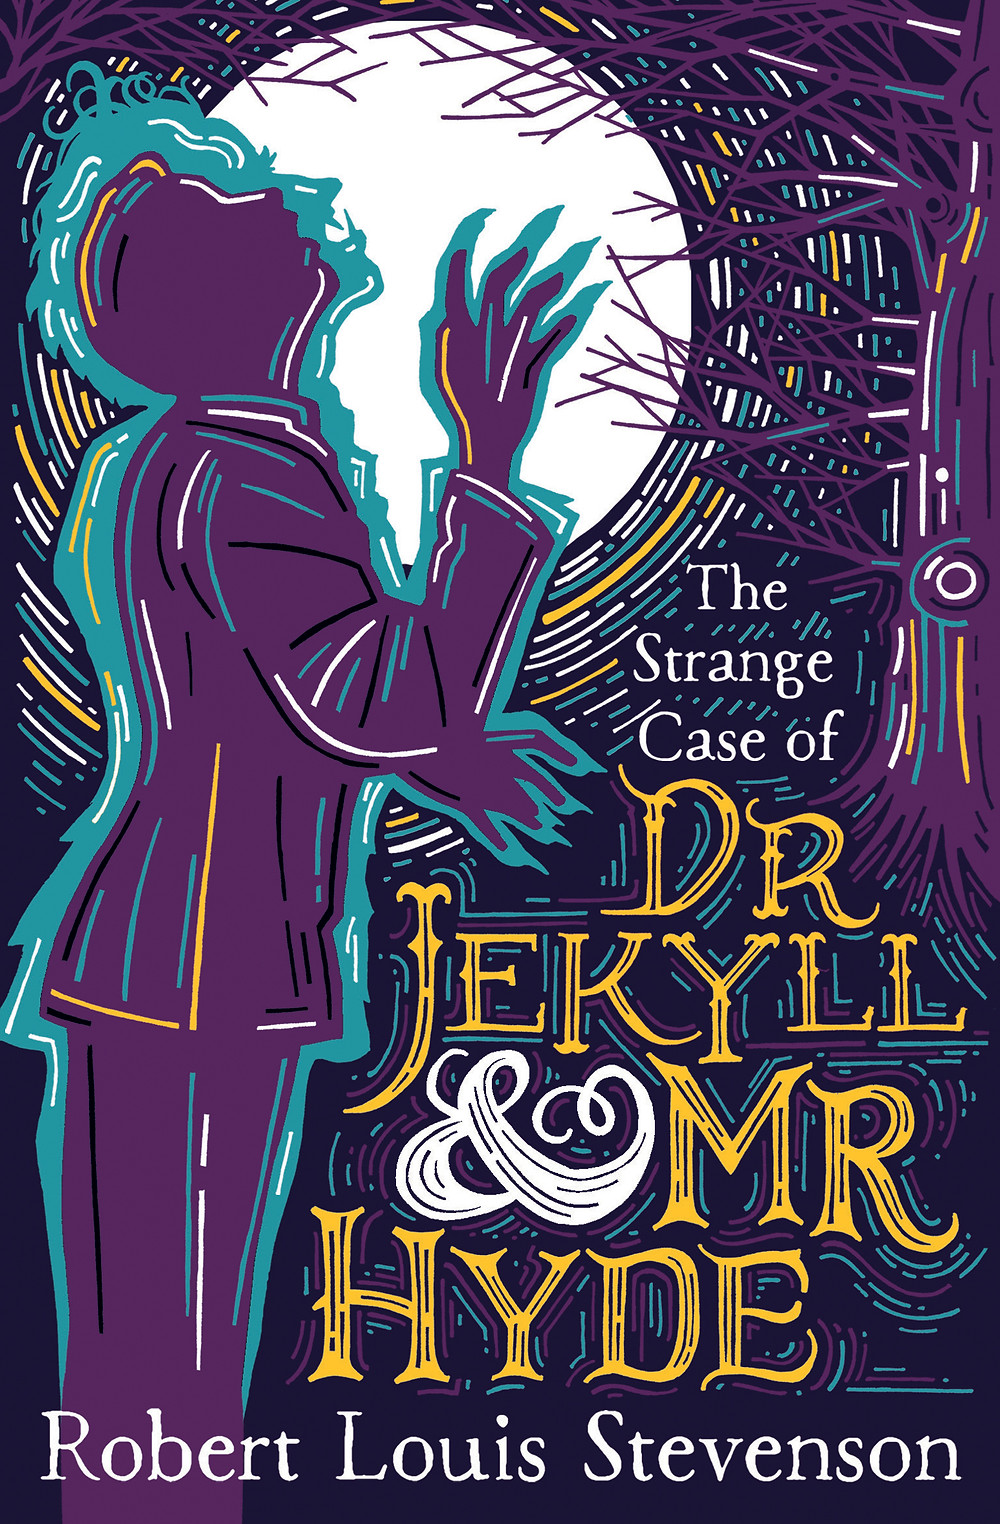 A dyslexia-friendly version of the classical novel The Strange Case of Dr Jekyll and Mr Hyde